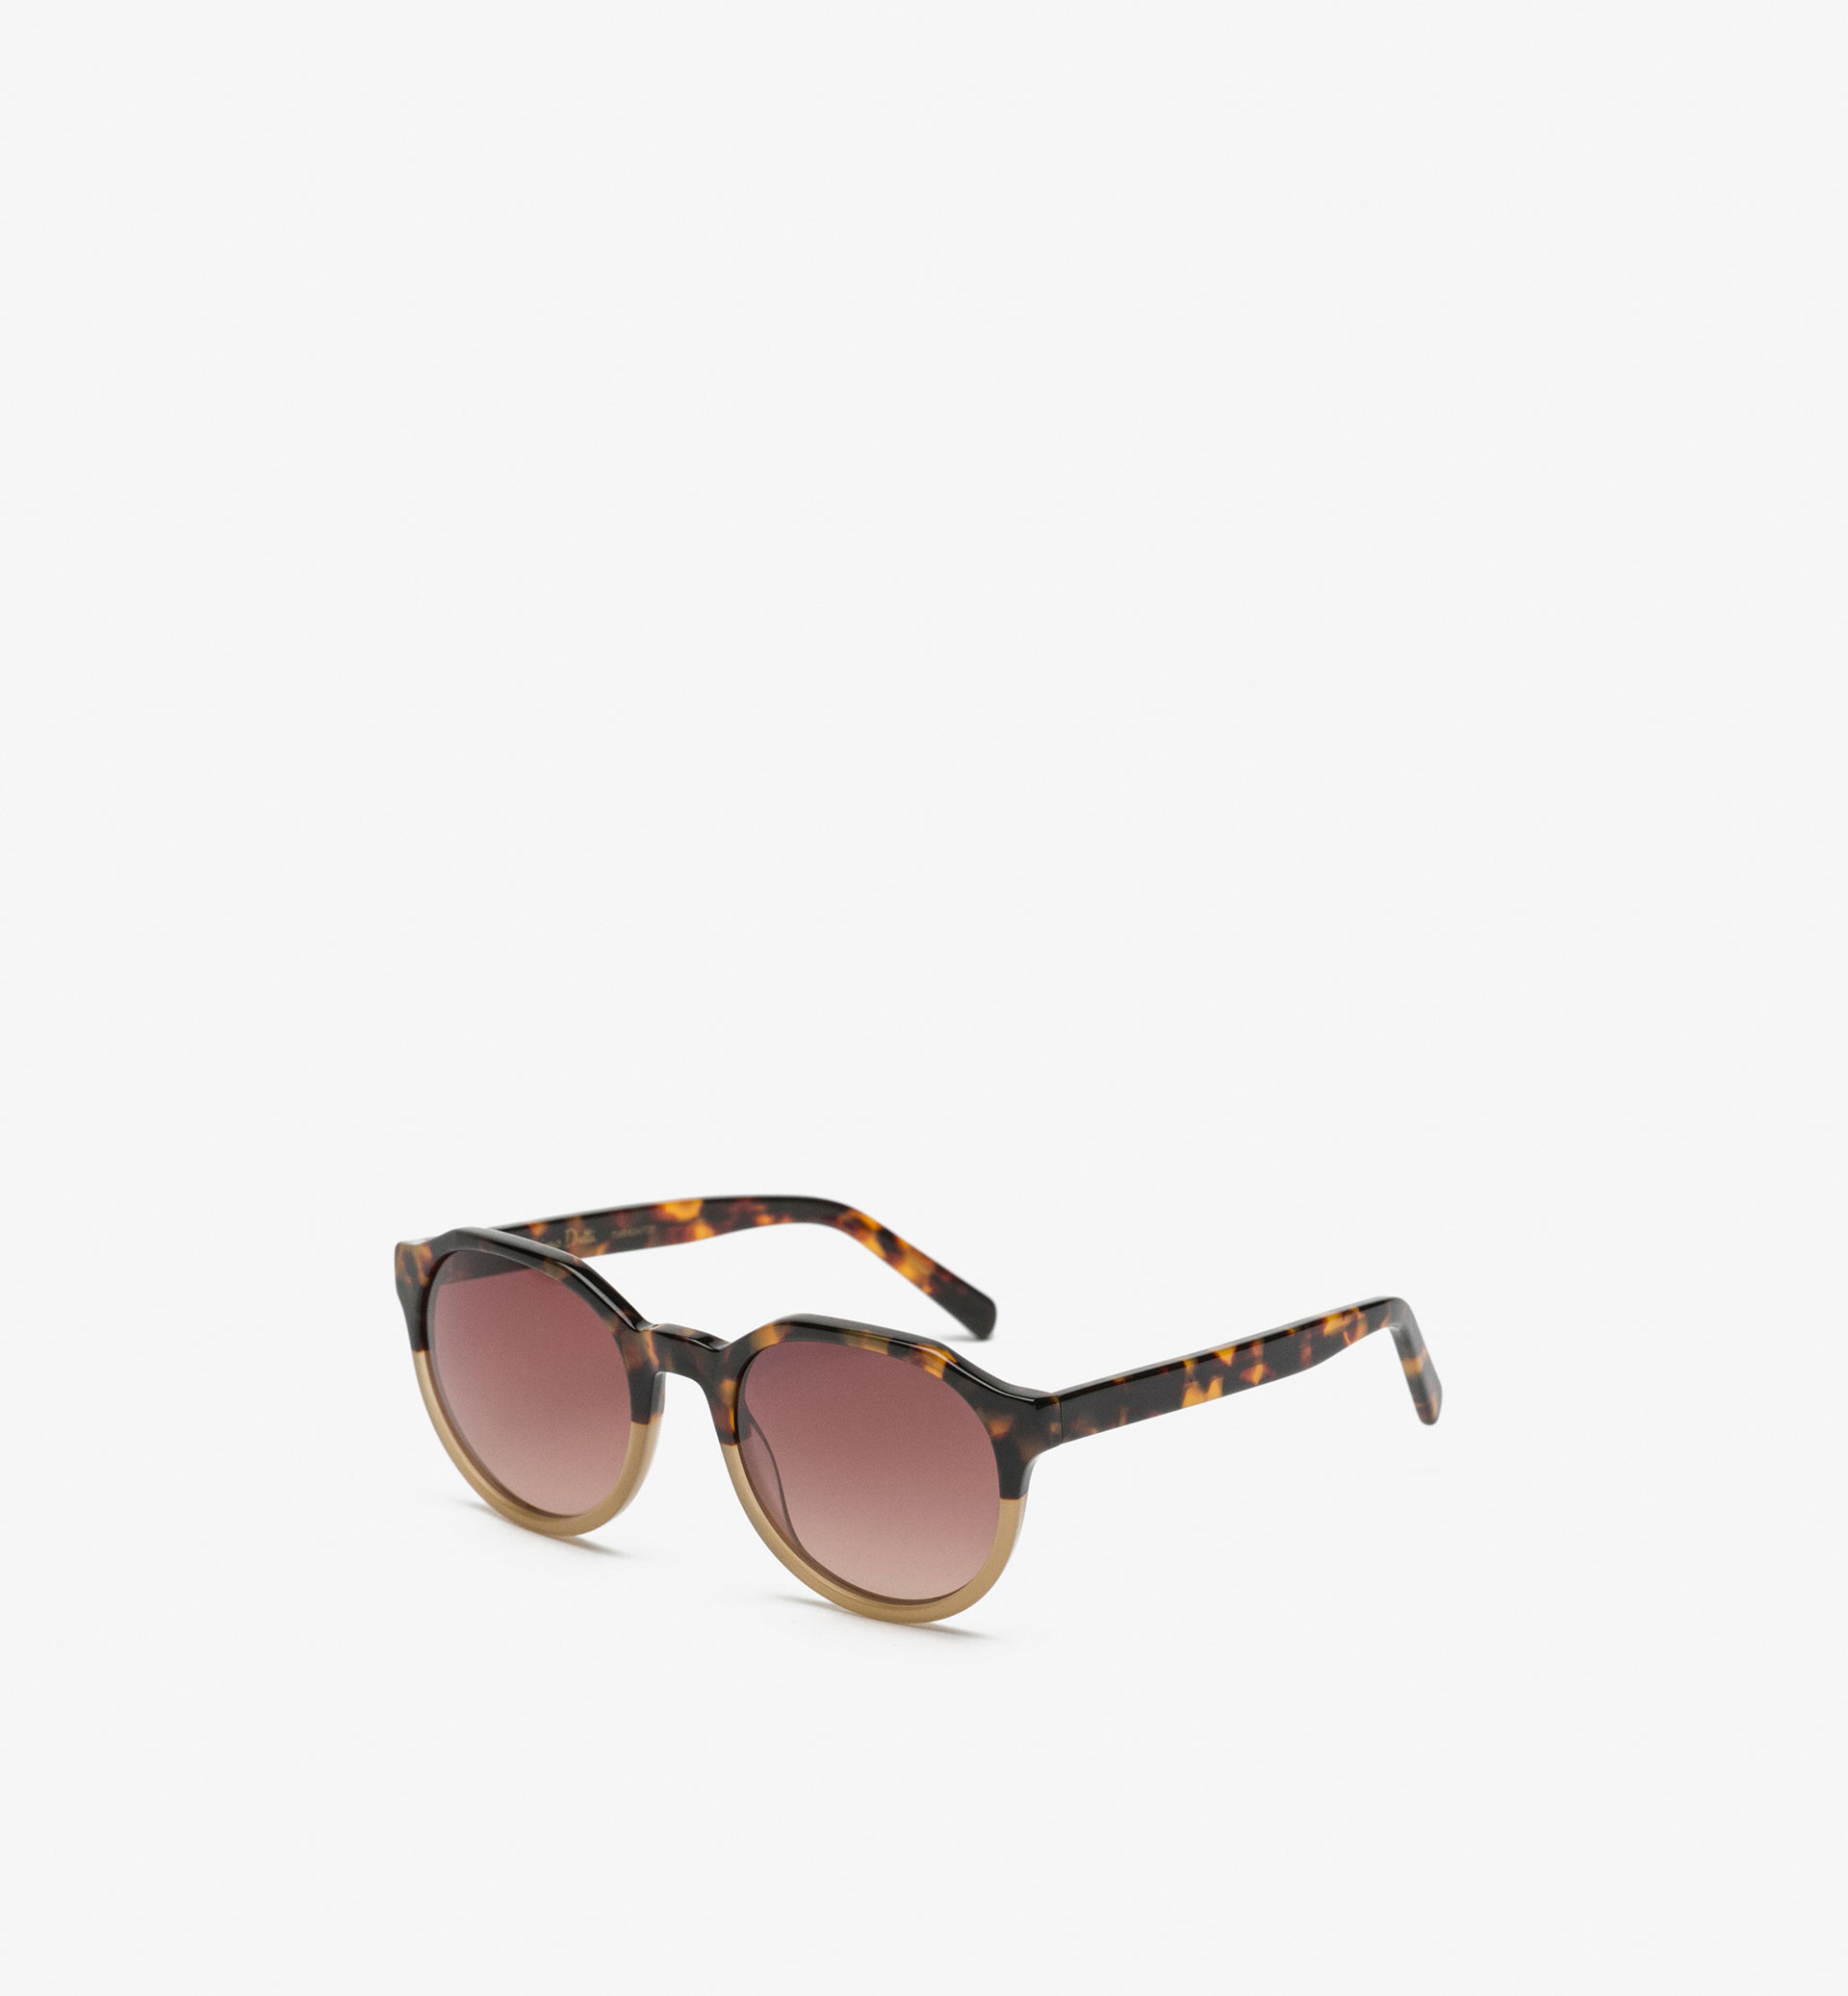 TWO-TONED TORTOISESHELL GLASSES